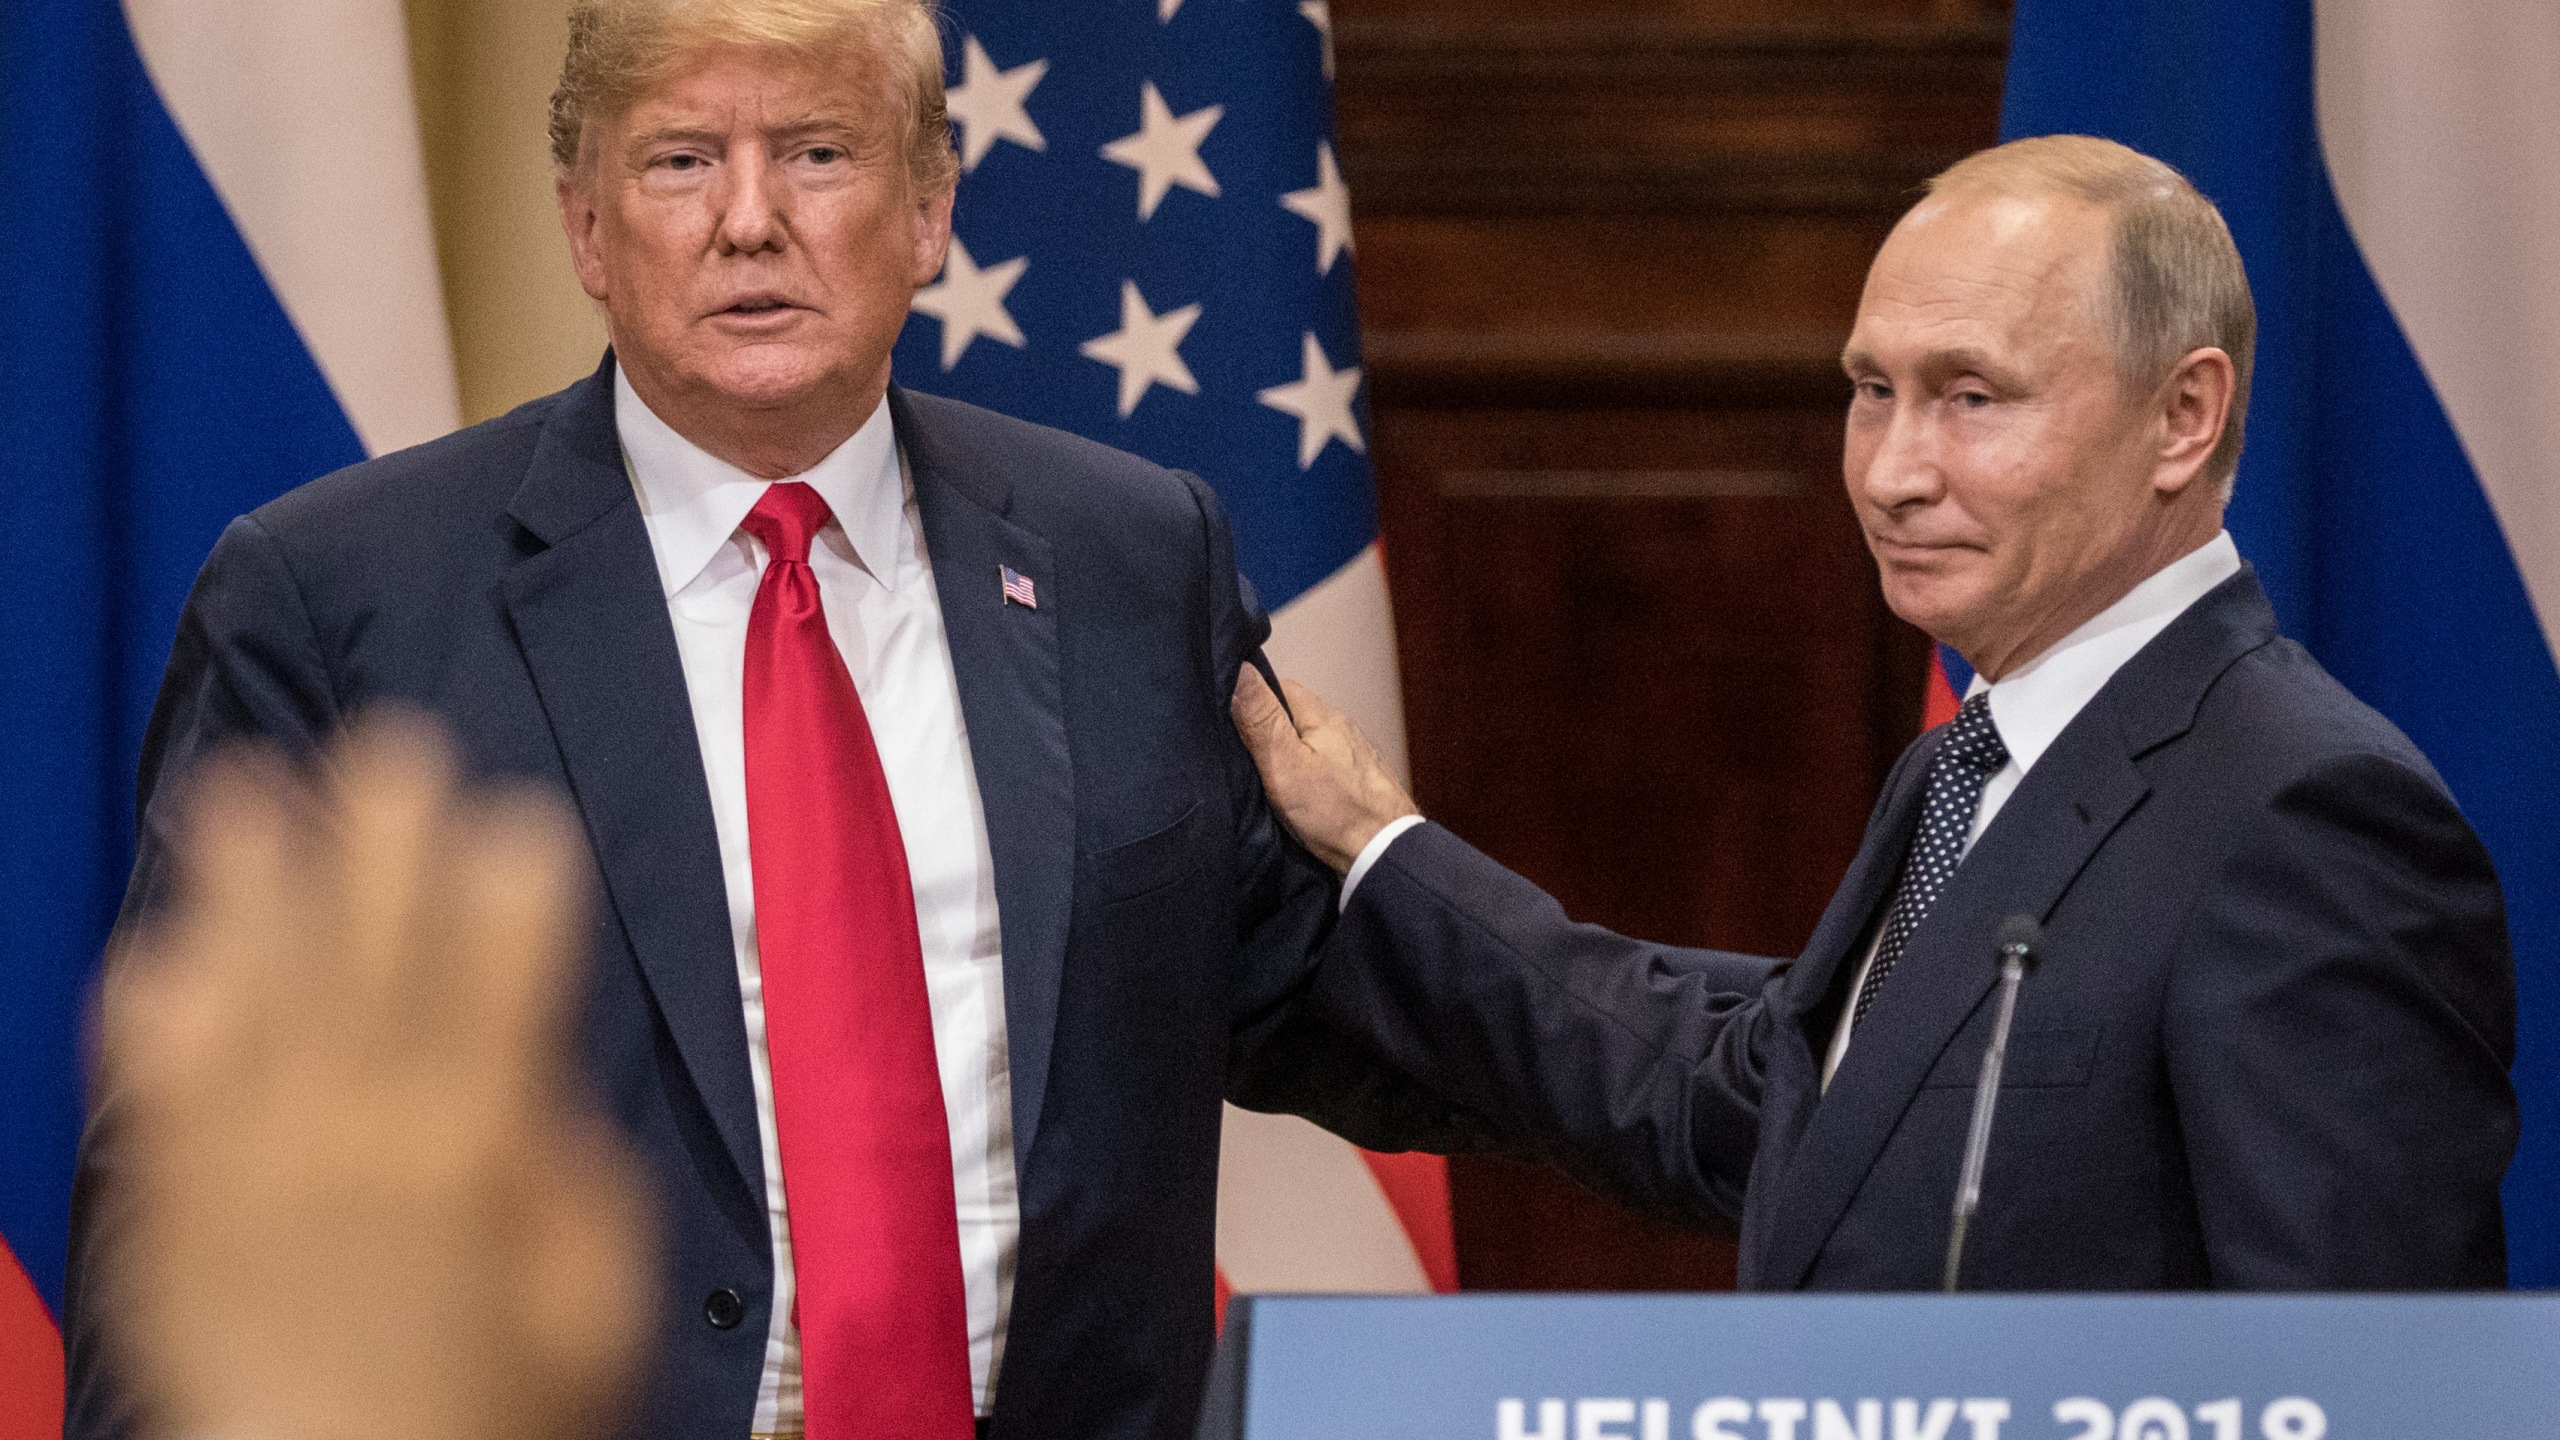 U.S. President Donald Trump, left, and Russian President Vladimir Putin shake hands during a joint press conference after their summit on July 16, 2018, in Helsinki, Finland. (Credit: Chris McGrath/Getty Images)